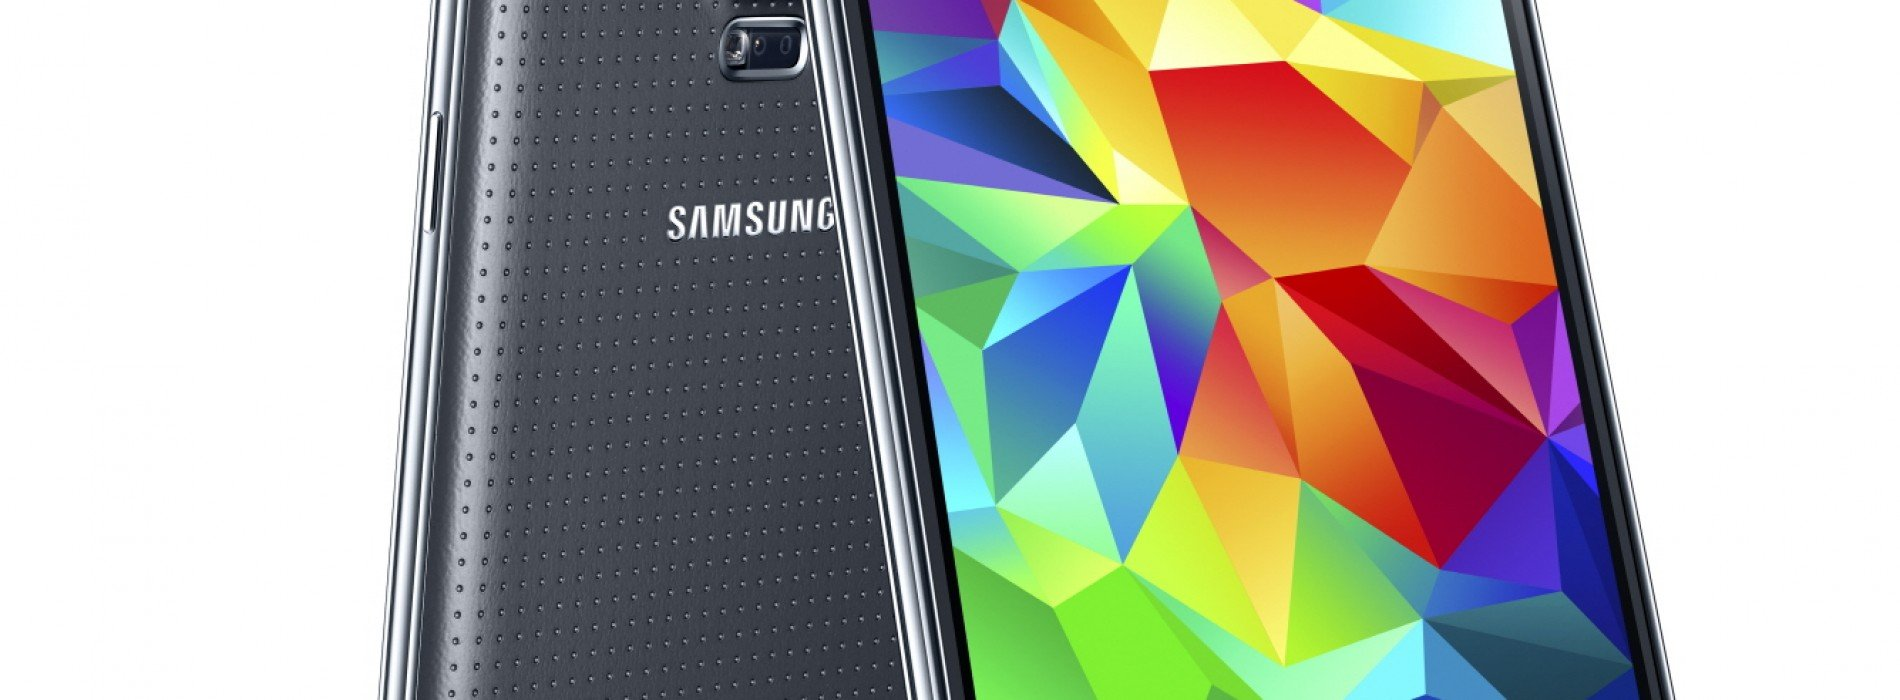 U.S. Cellular confirms upcoming availability of Samsung Galaxy S5 and Gear devices